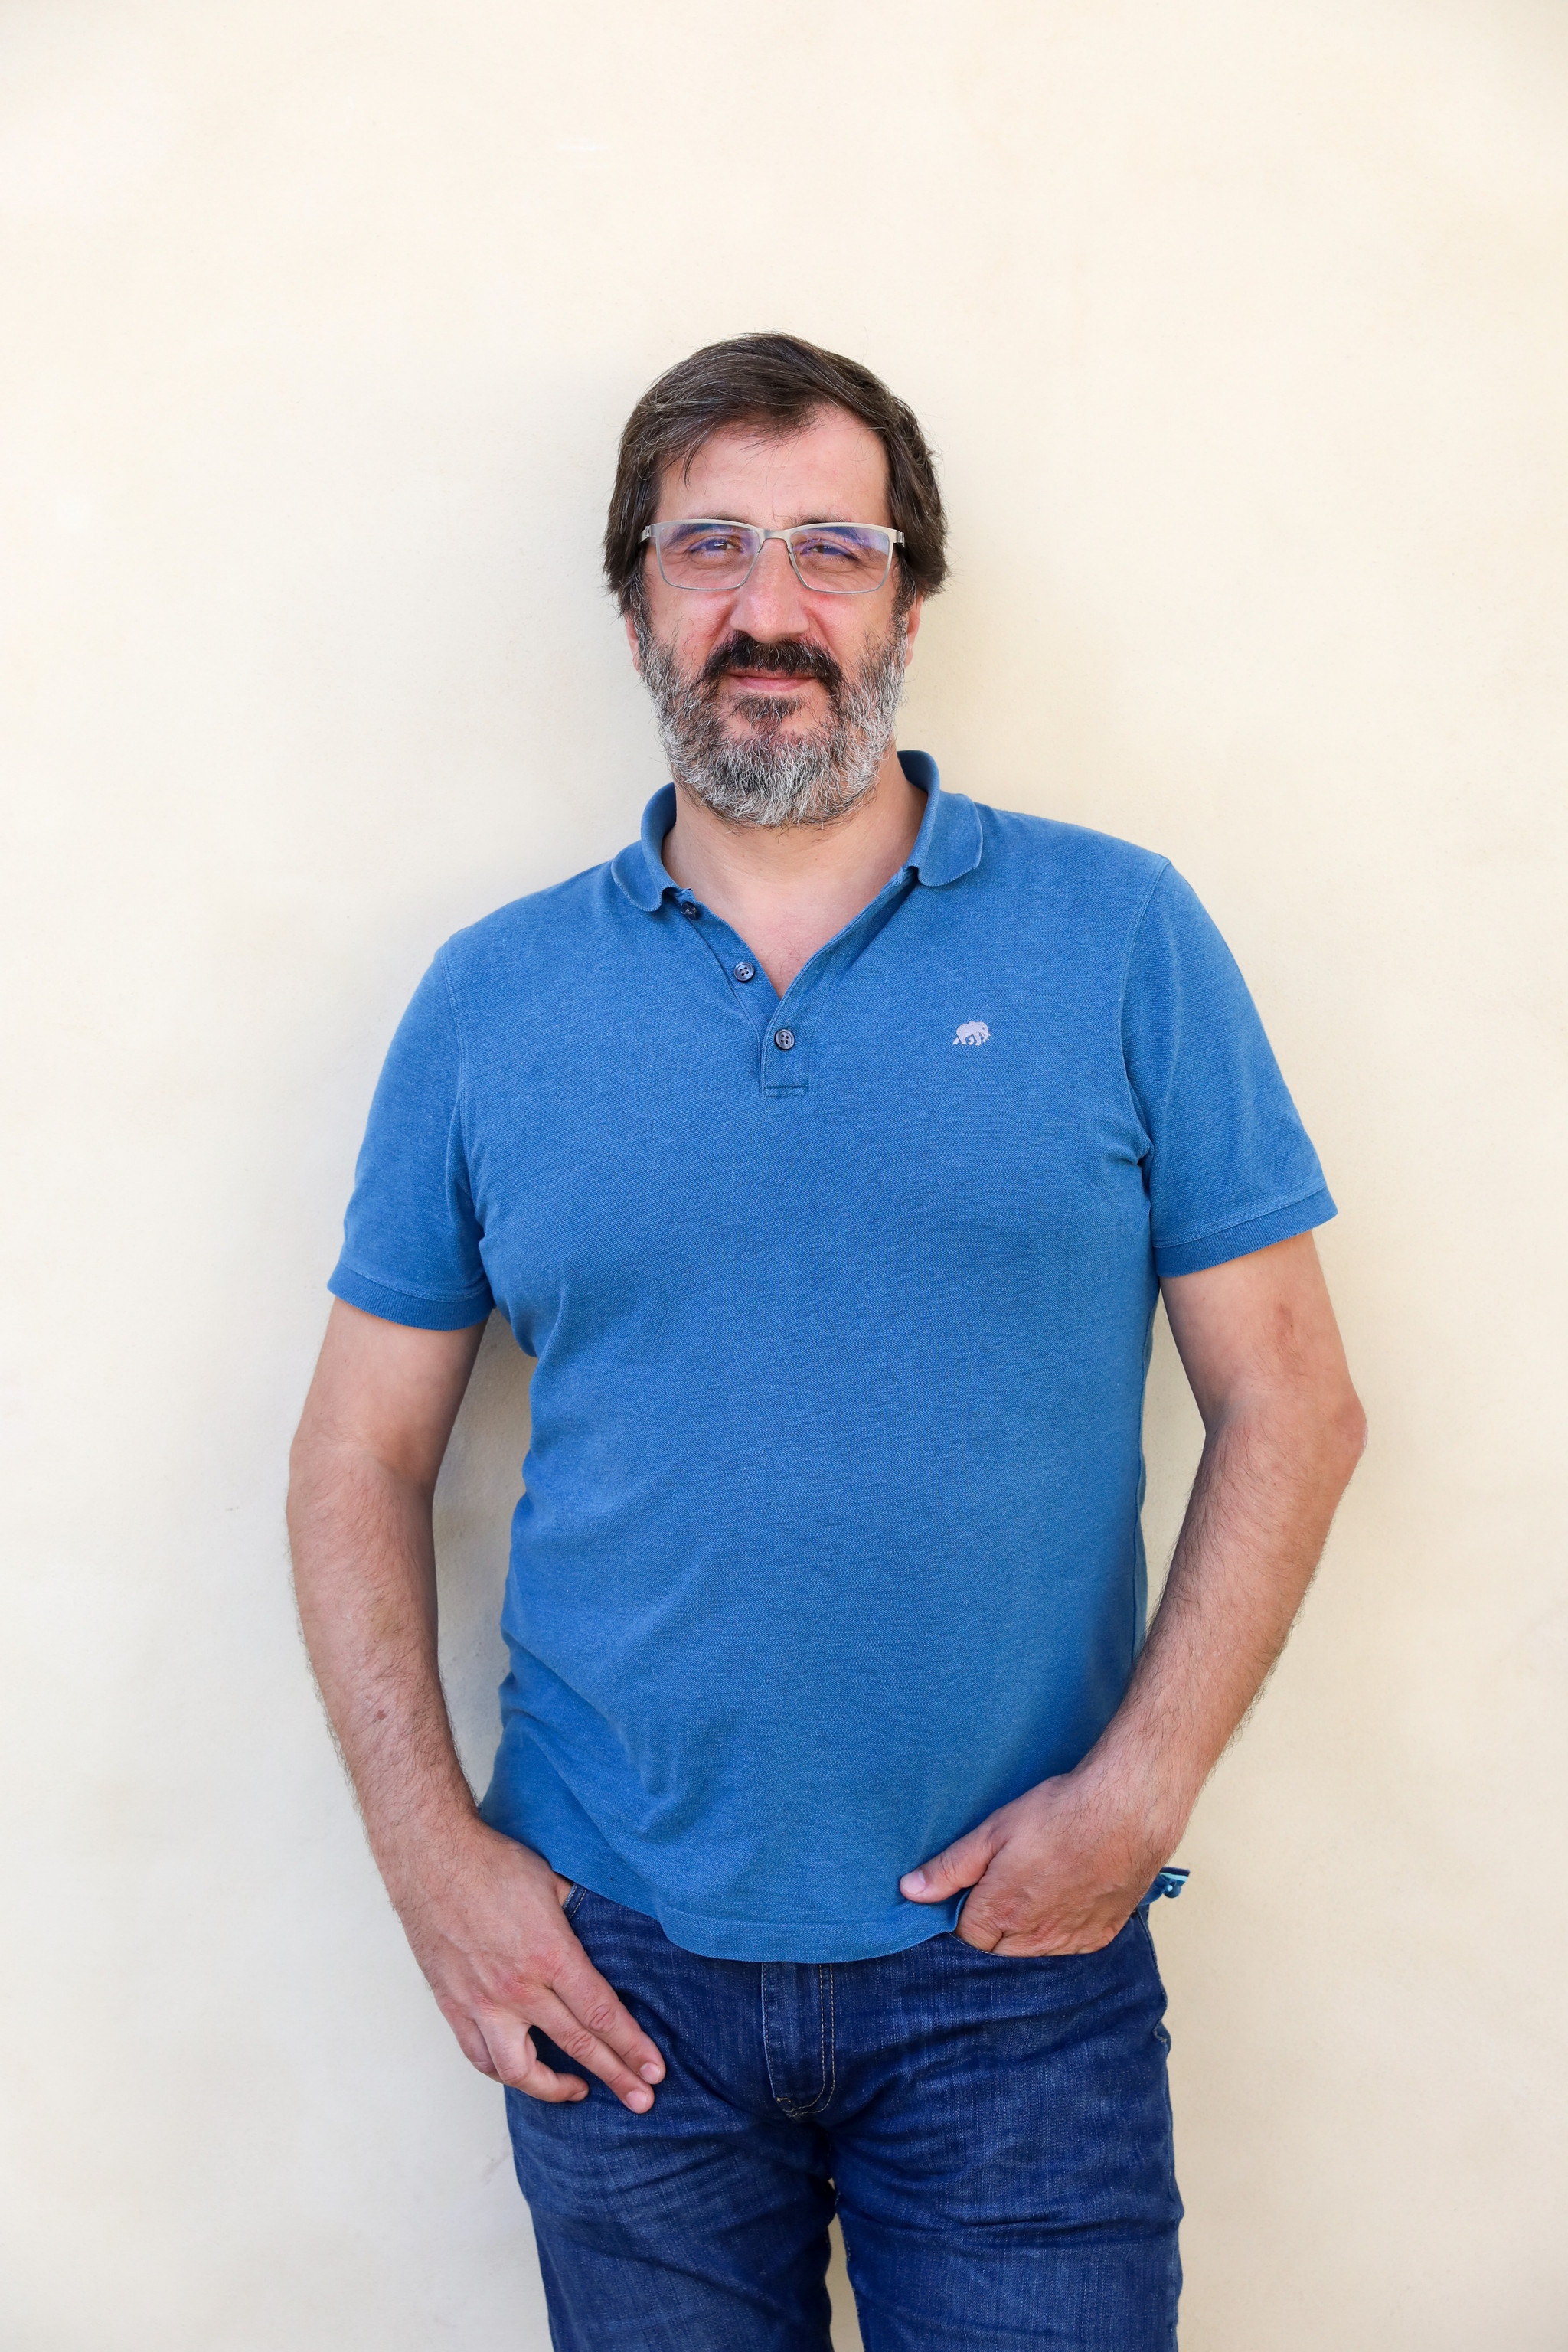 LM-PEDRO GUEDES.jpg